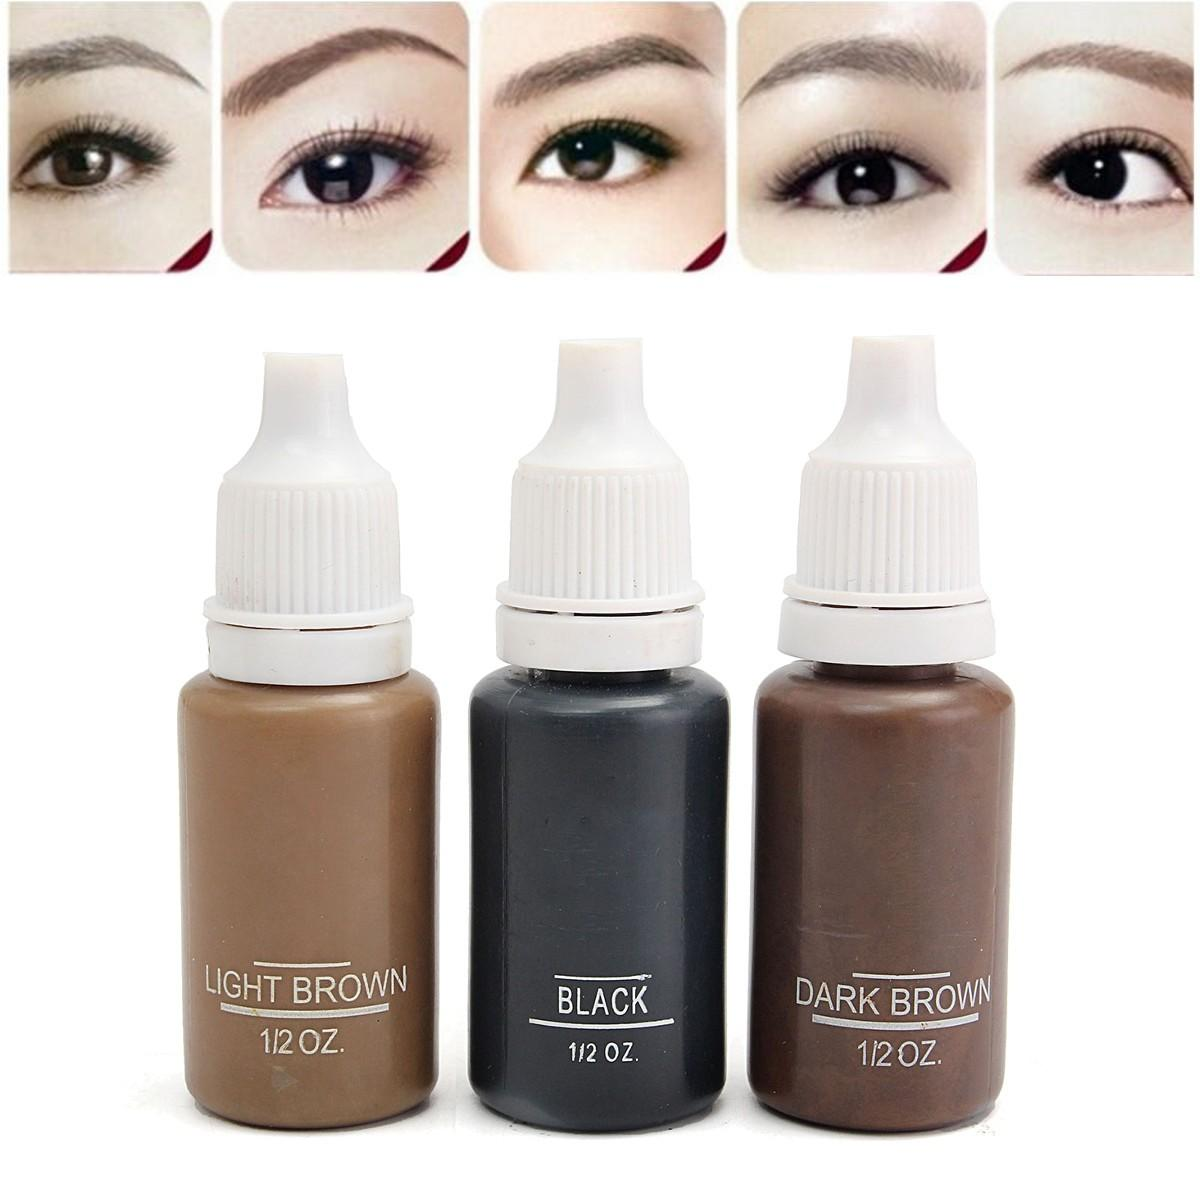 Wholesale Tattoo Ink 3 Different Colors For Permanent Makeup Tattooing Eyebrow Eyeliner Lip 15ml Cosmetic Manual Paint Pigments Red Ink Tattoo Tatoo